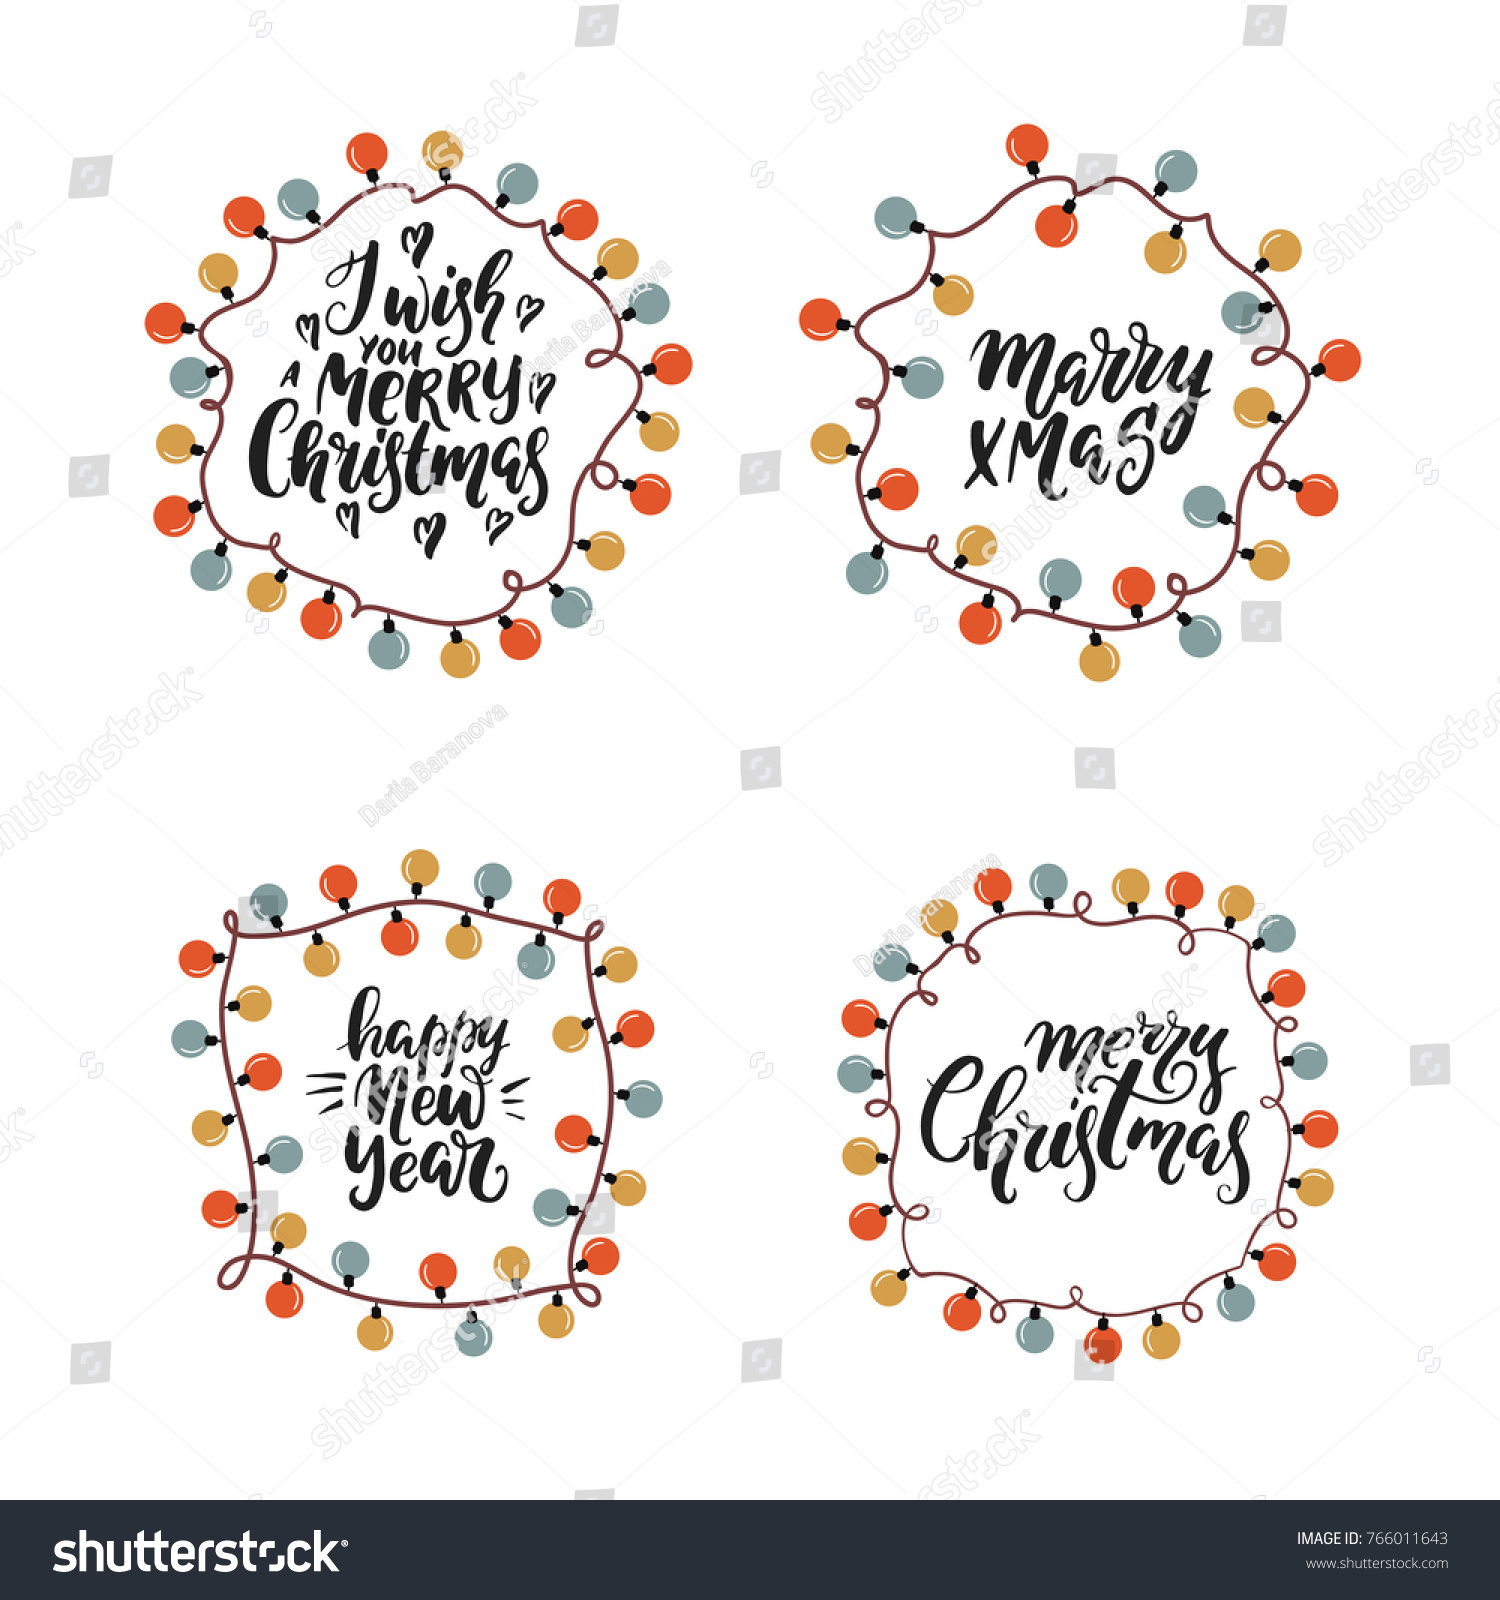 vector set of christmas lights frame with lettering on white background easy to use